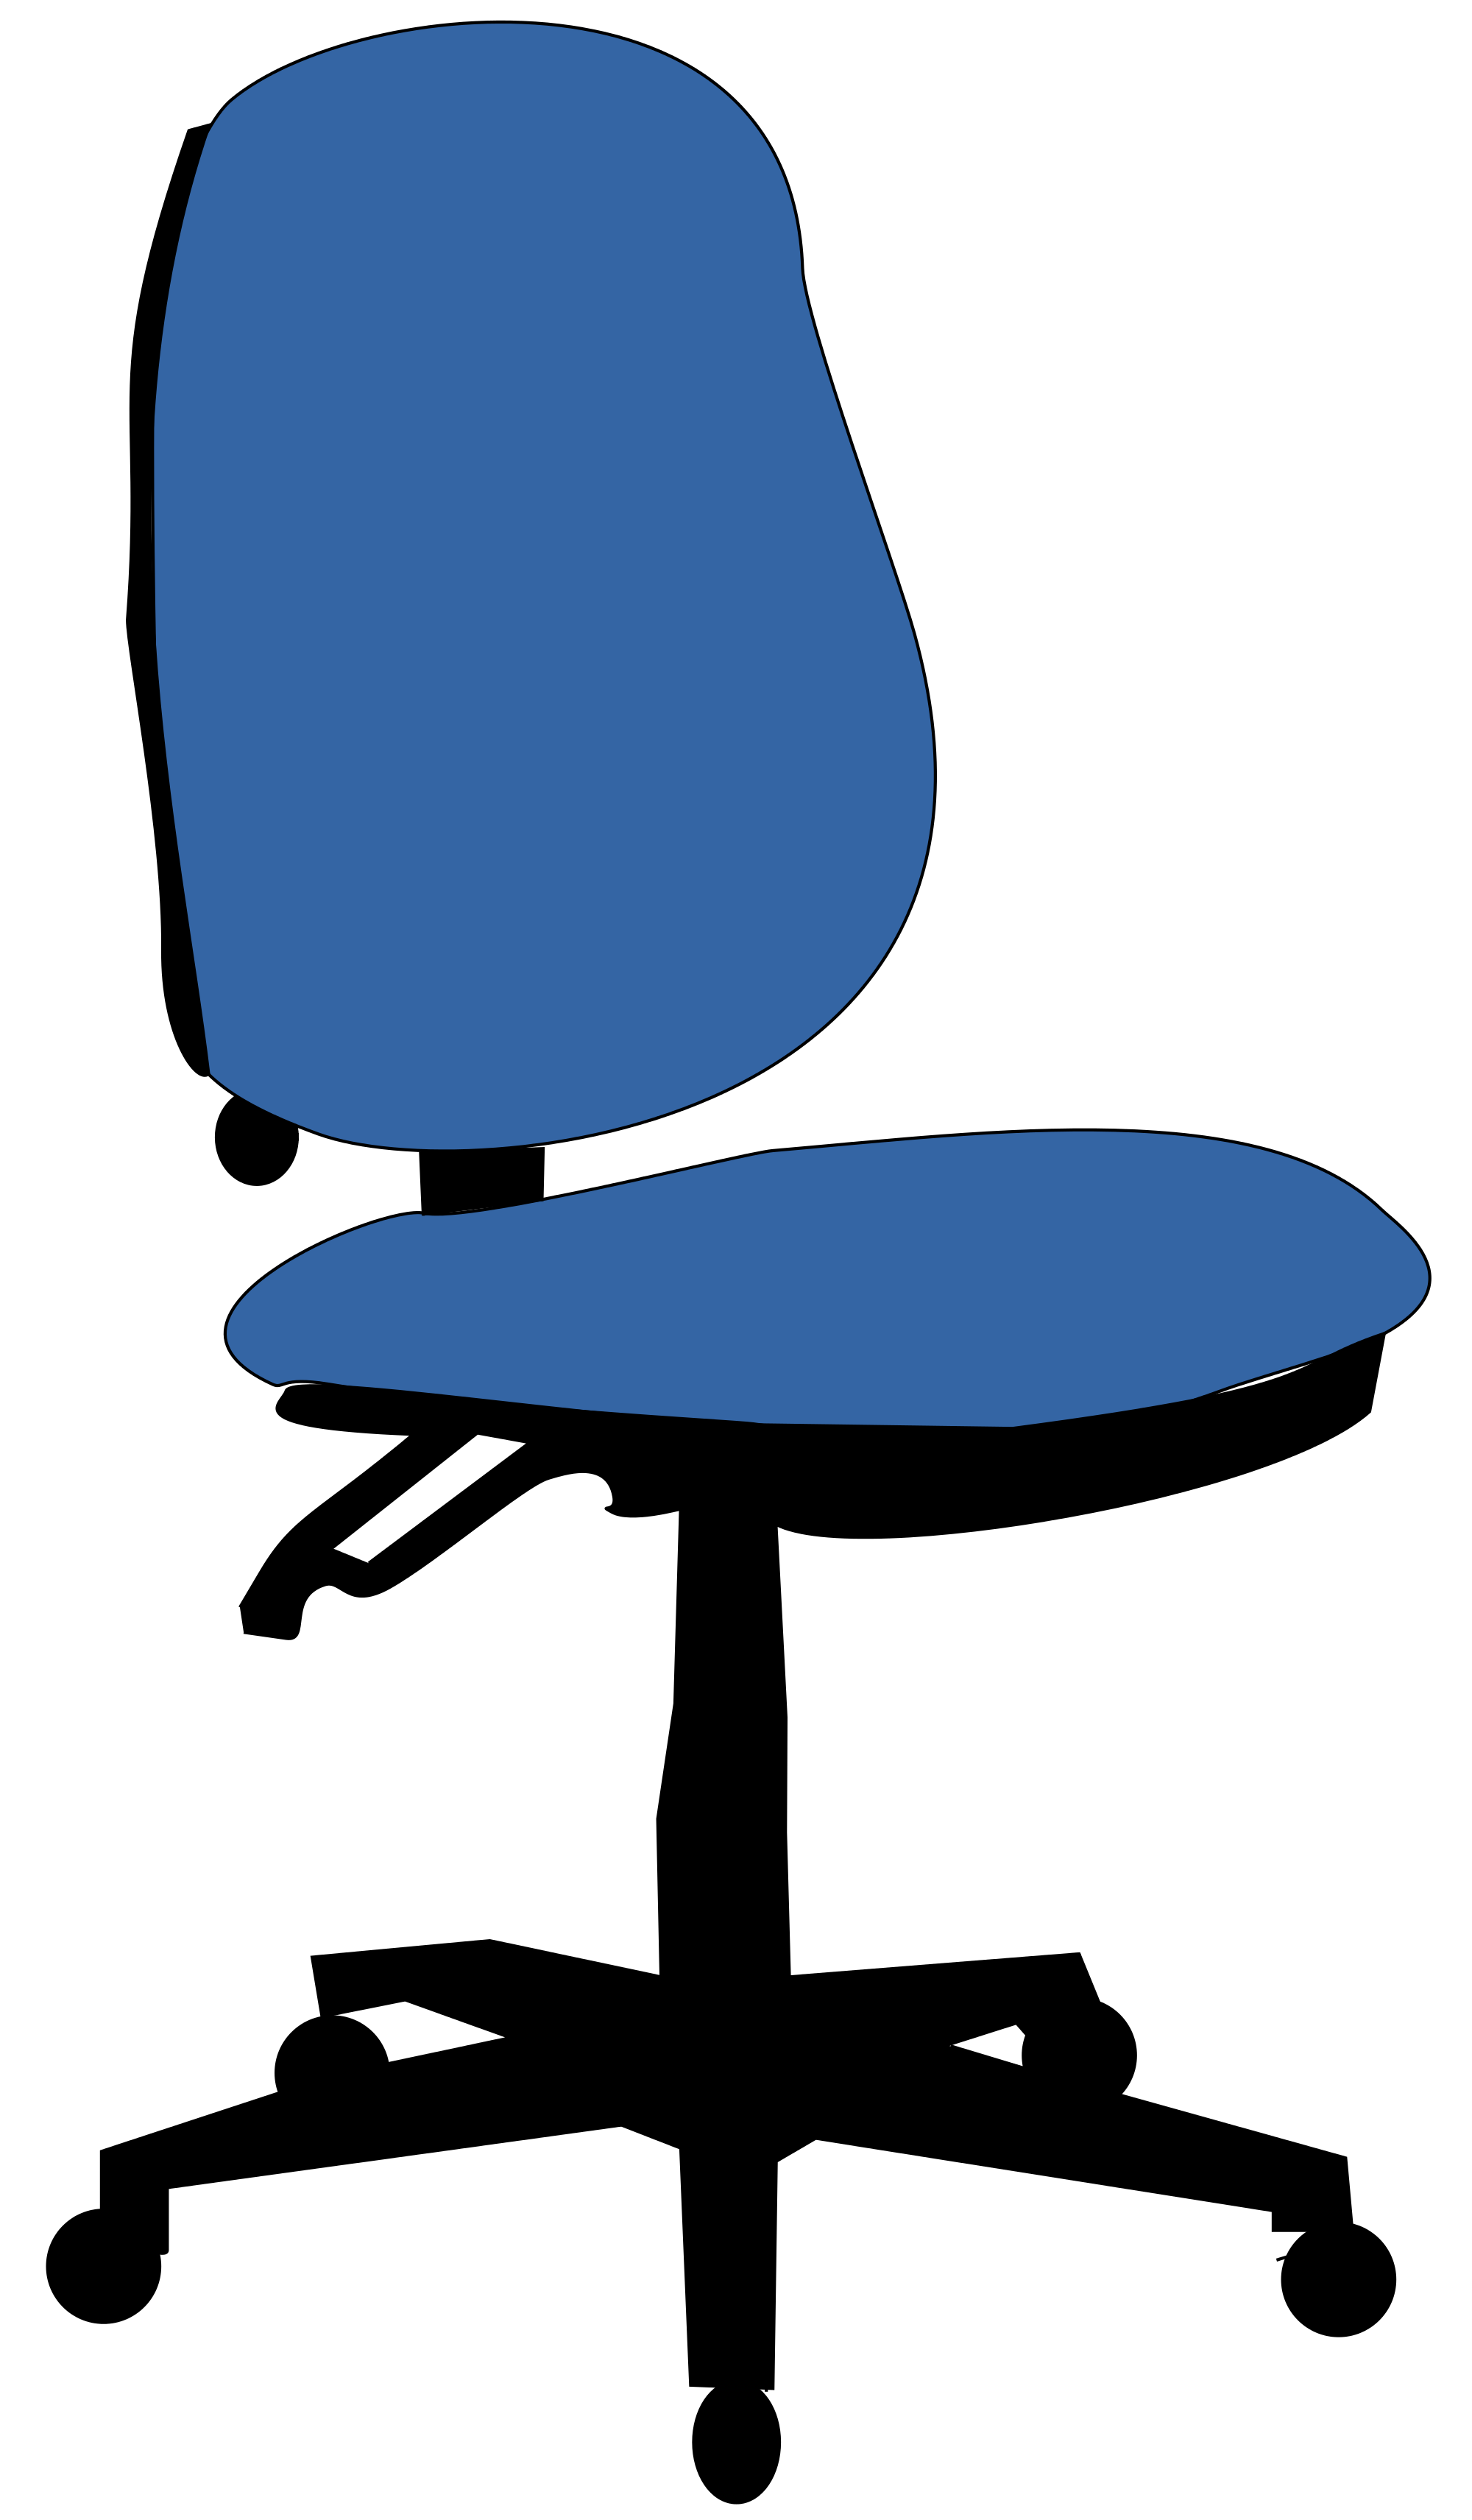 vector Chair clipart svg. File nuvola armless wikimedia.